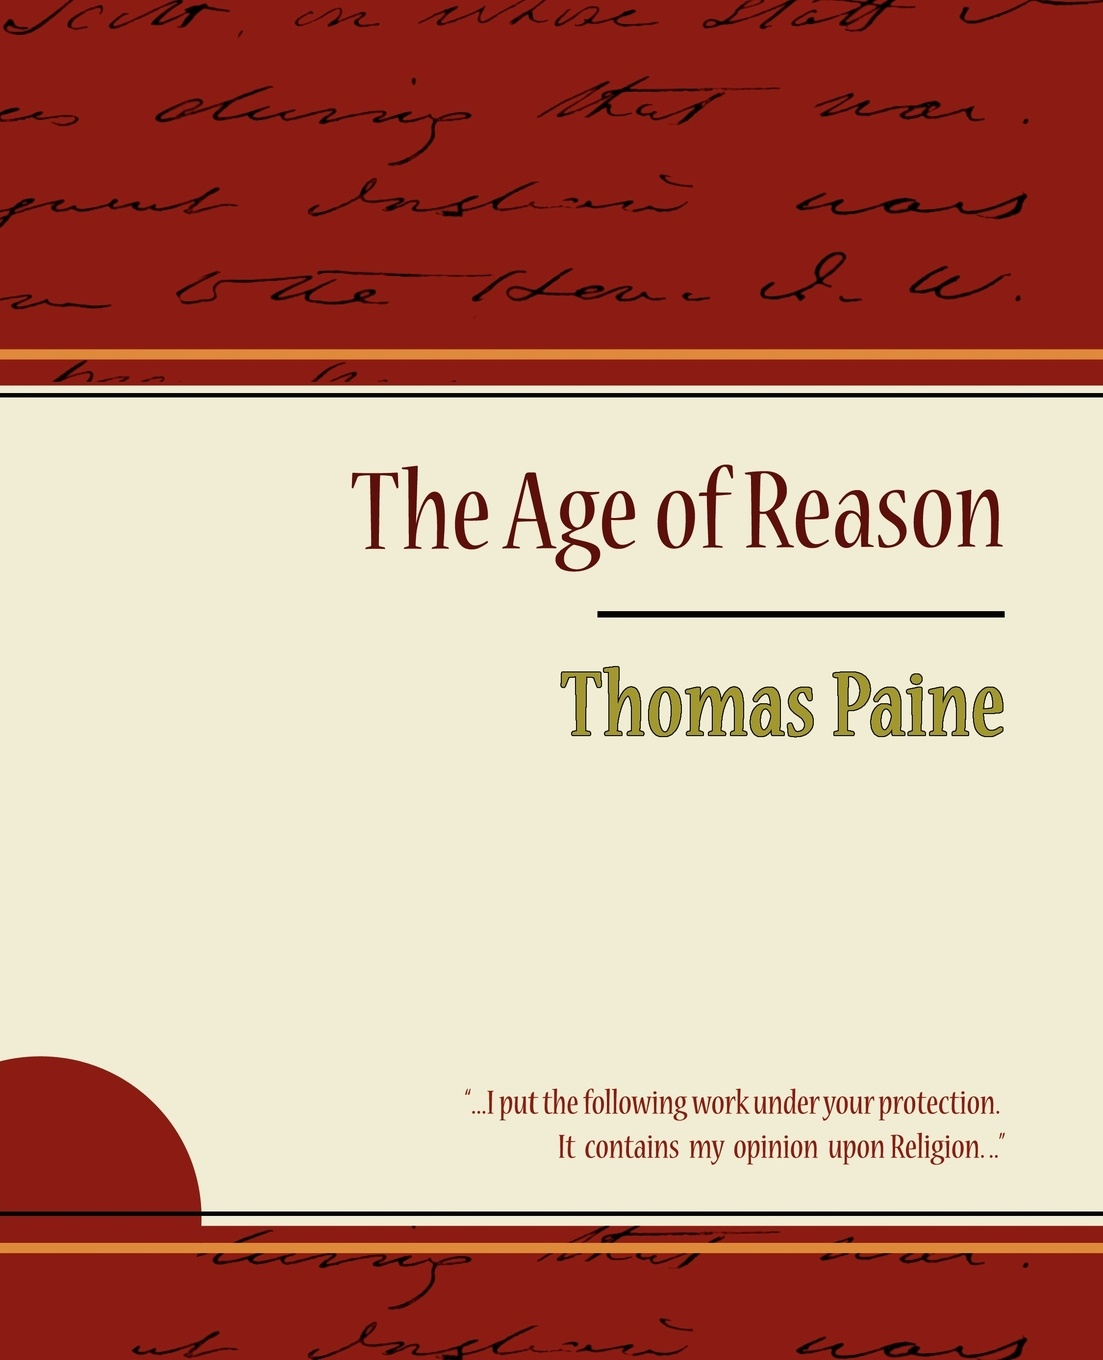 Thomas Paine, Thomas Paine The Age of Reason - Thomas Paine joseph moreau testimonials to the merits of thomas paine